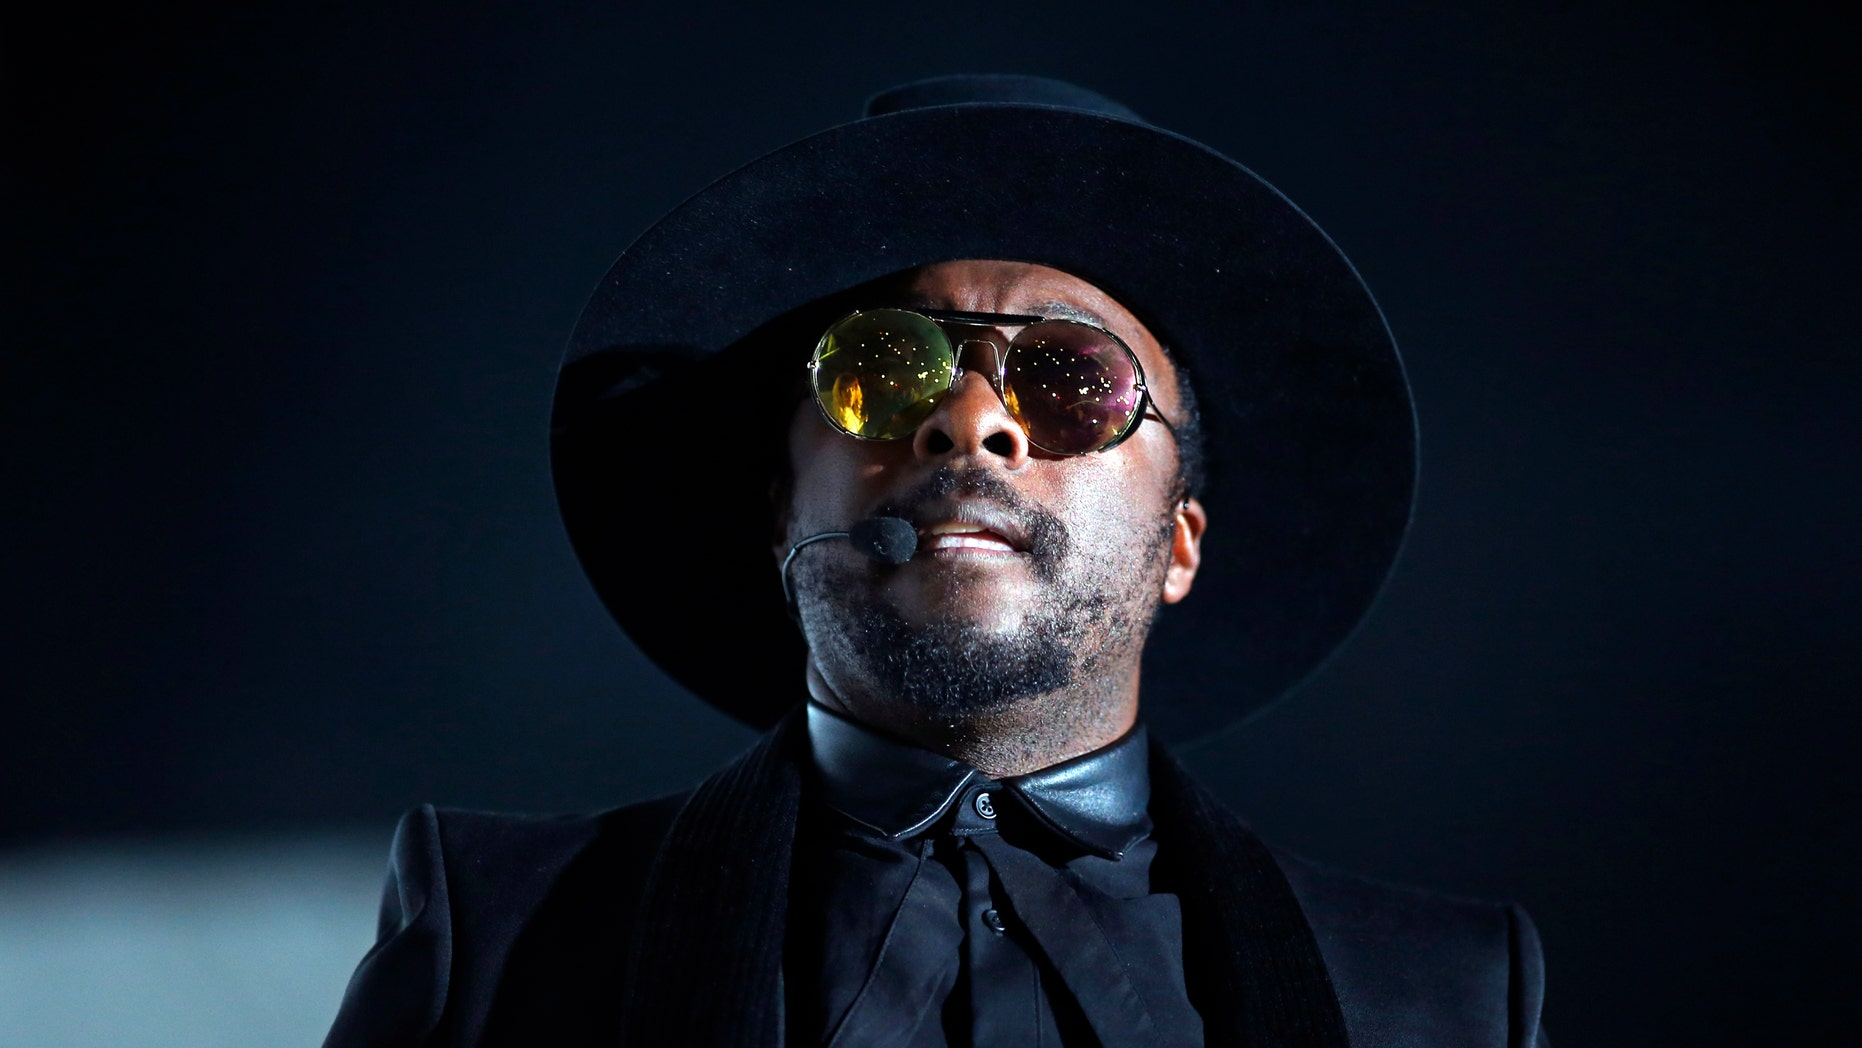 Recording artist Will.i.am performs at Bercy stadium in Paris, December 16, 2013.